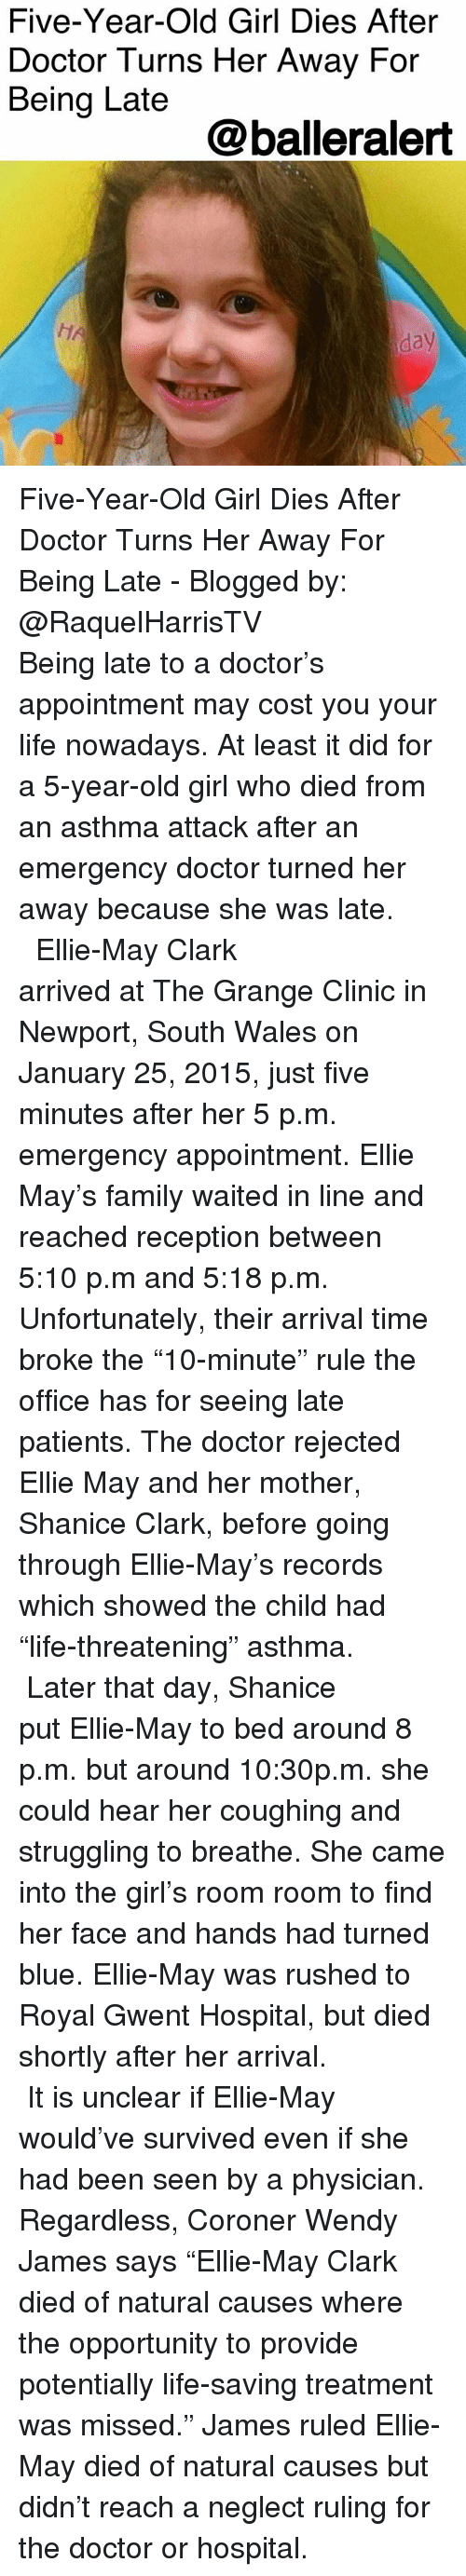 """Being Late: Five-Year-Old Girl Dies After  Doctor Turns Her Away For  Being Late  @balleralert  HA  day Five-Year-Old Girl Dies After Doctor Turns Her Away For Being Late - Blogged by: @RaquelHarrisTV ⠀⠀⠀⠀⠀⠀⠀⠀⠀ ⠀⠀⠀⠀⠀⠀⠀⠀⠀ Being late to a doctor's appointment may cost you your life nowadays. At least it did for a 5-year-old girl who died from an asthma attack after an emergency doctor turned her away because she was late. ⠀⠀⠀⠀⠀⠀⠀⠀⠀ ⠀⠀⠀⠀⠀⠀⠀⠀⠀ Ellie-May Clark arrived at The Grange Clinic in Newport, South Wales on January 25, 2015, just five minutes after her 5 p.m. emergency appointment. Ellie May's family waited in line and reached reception between 5:10 p.m and 5:18 p.m. Unfortunately, their arrival time broke the """"10-minute"""" rule the office has for seeing late patients. The doctor rejected Ellie May and her mother, Shanice Clark, before going through Ellie-May's records which showed the child had """"life-threatening"""" asthma. ⠀⠀⠀⠀⠀⠀⠀⠀⠀ ⠀⠀⠀⠀⠀⠀⠀⠀⠀ Later that day, Shanice put Ellie-May to bed around 8 p.m. but around 10:30p.m. she could hear her coughing and struggling to breathe. She came into the girl's room room to find her face and hands had turned blue. Ellie-May was rushed to Royal Gwent Hospital, but died shortly after her arrival. ⠀⠀⠀⠀⠀⠀⠀⠀⠀ ⠀⠀⠀⠀⠀⠀⠀⠀⠀ It is unclear if Ellie-May would've survived even if she had been seen by a physician. Regardless, Coroner Wendy James says """"Ellie-May Clark died of natural causes where the opportunity to provide potentially life-saving treatment was missed."""" James ruled Ellie-May died of natural causes but didn't reach a neglect ruling for the doctor or hospital."""